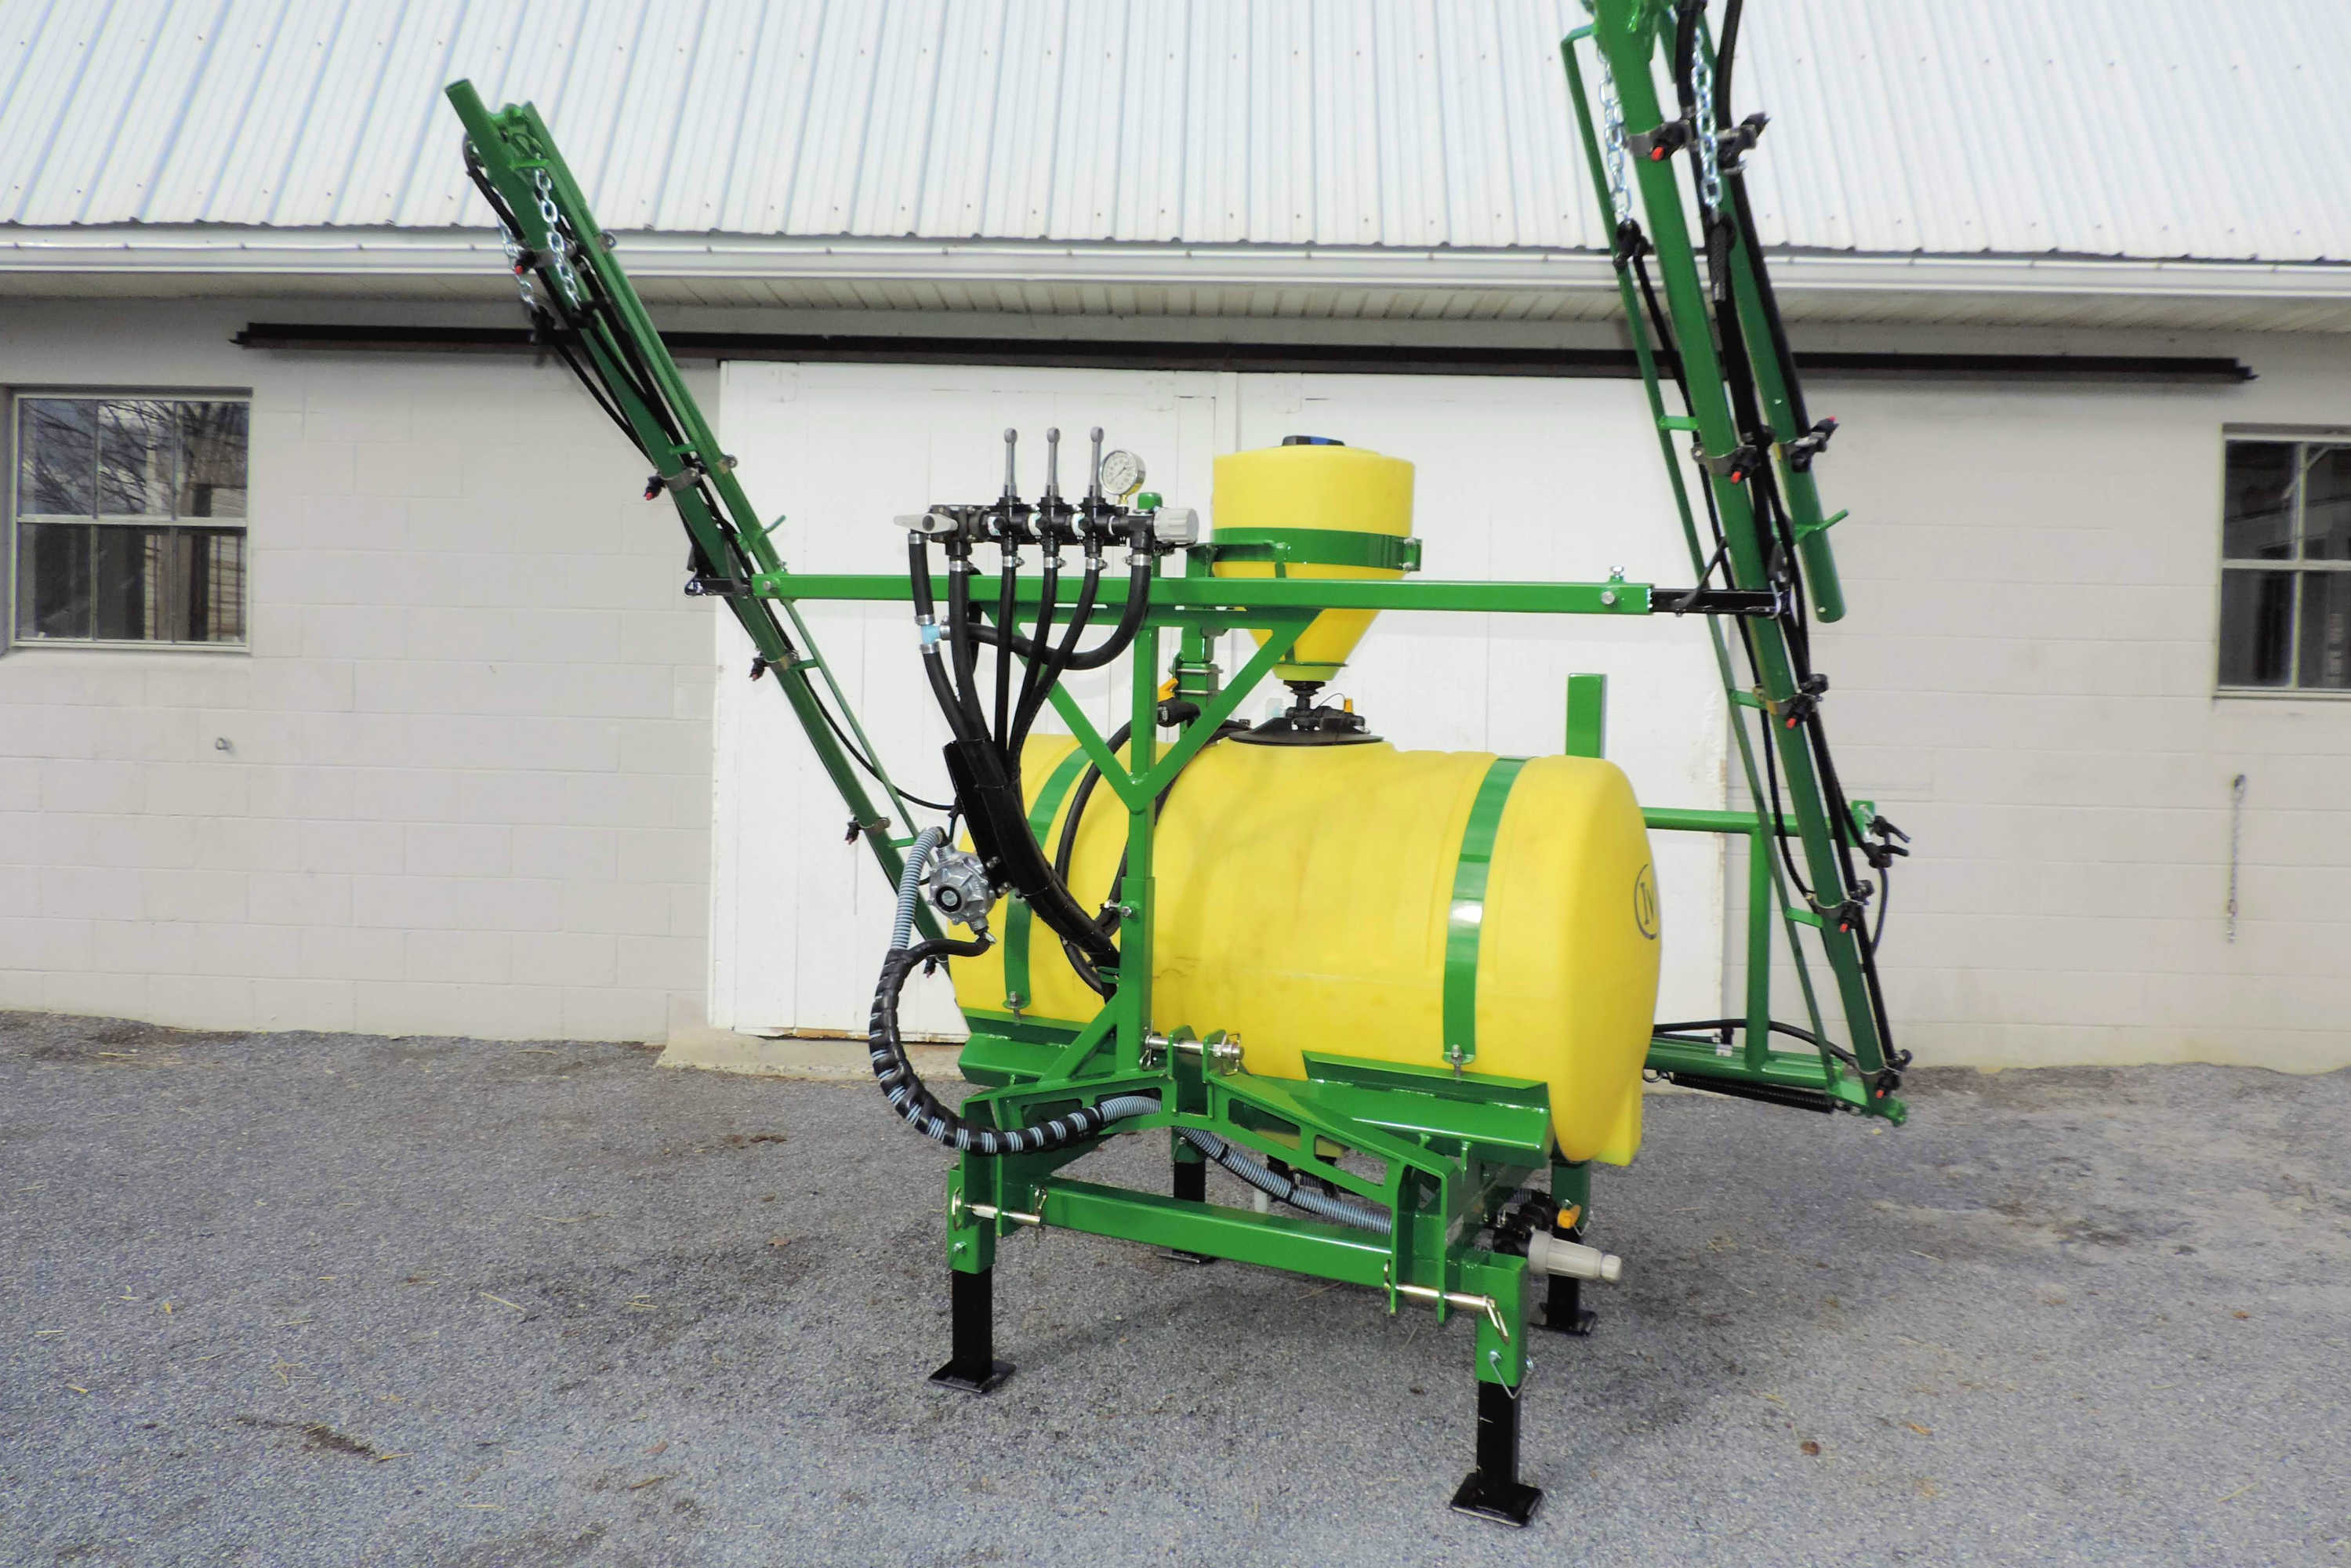 150 gallon 3-point Hitch Crop Sprayer with 30' manual-fold booms